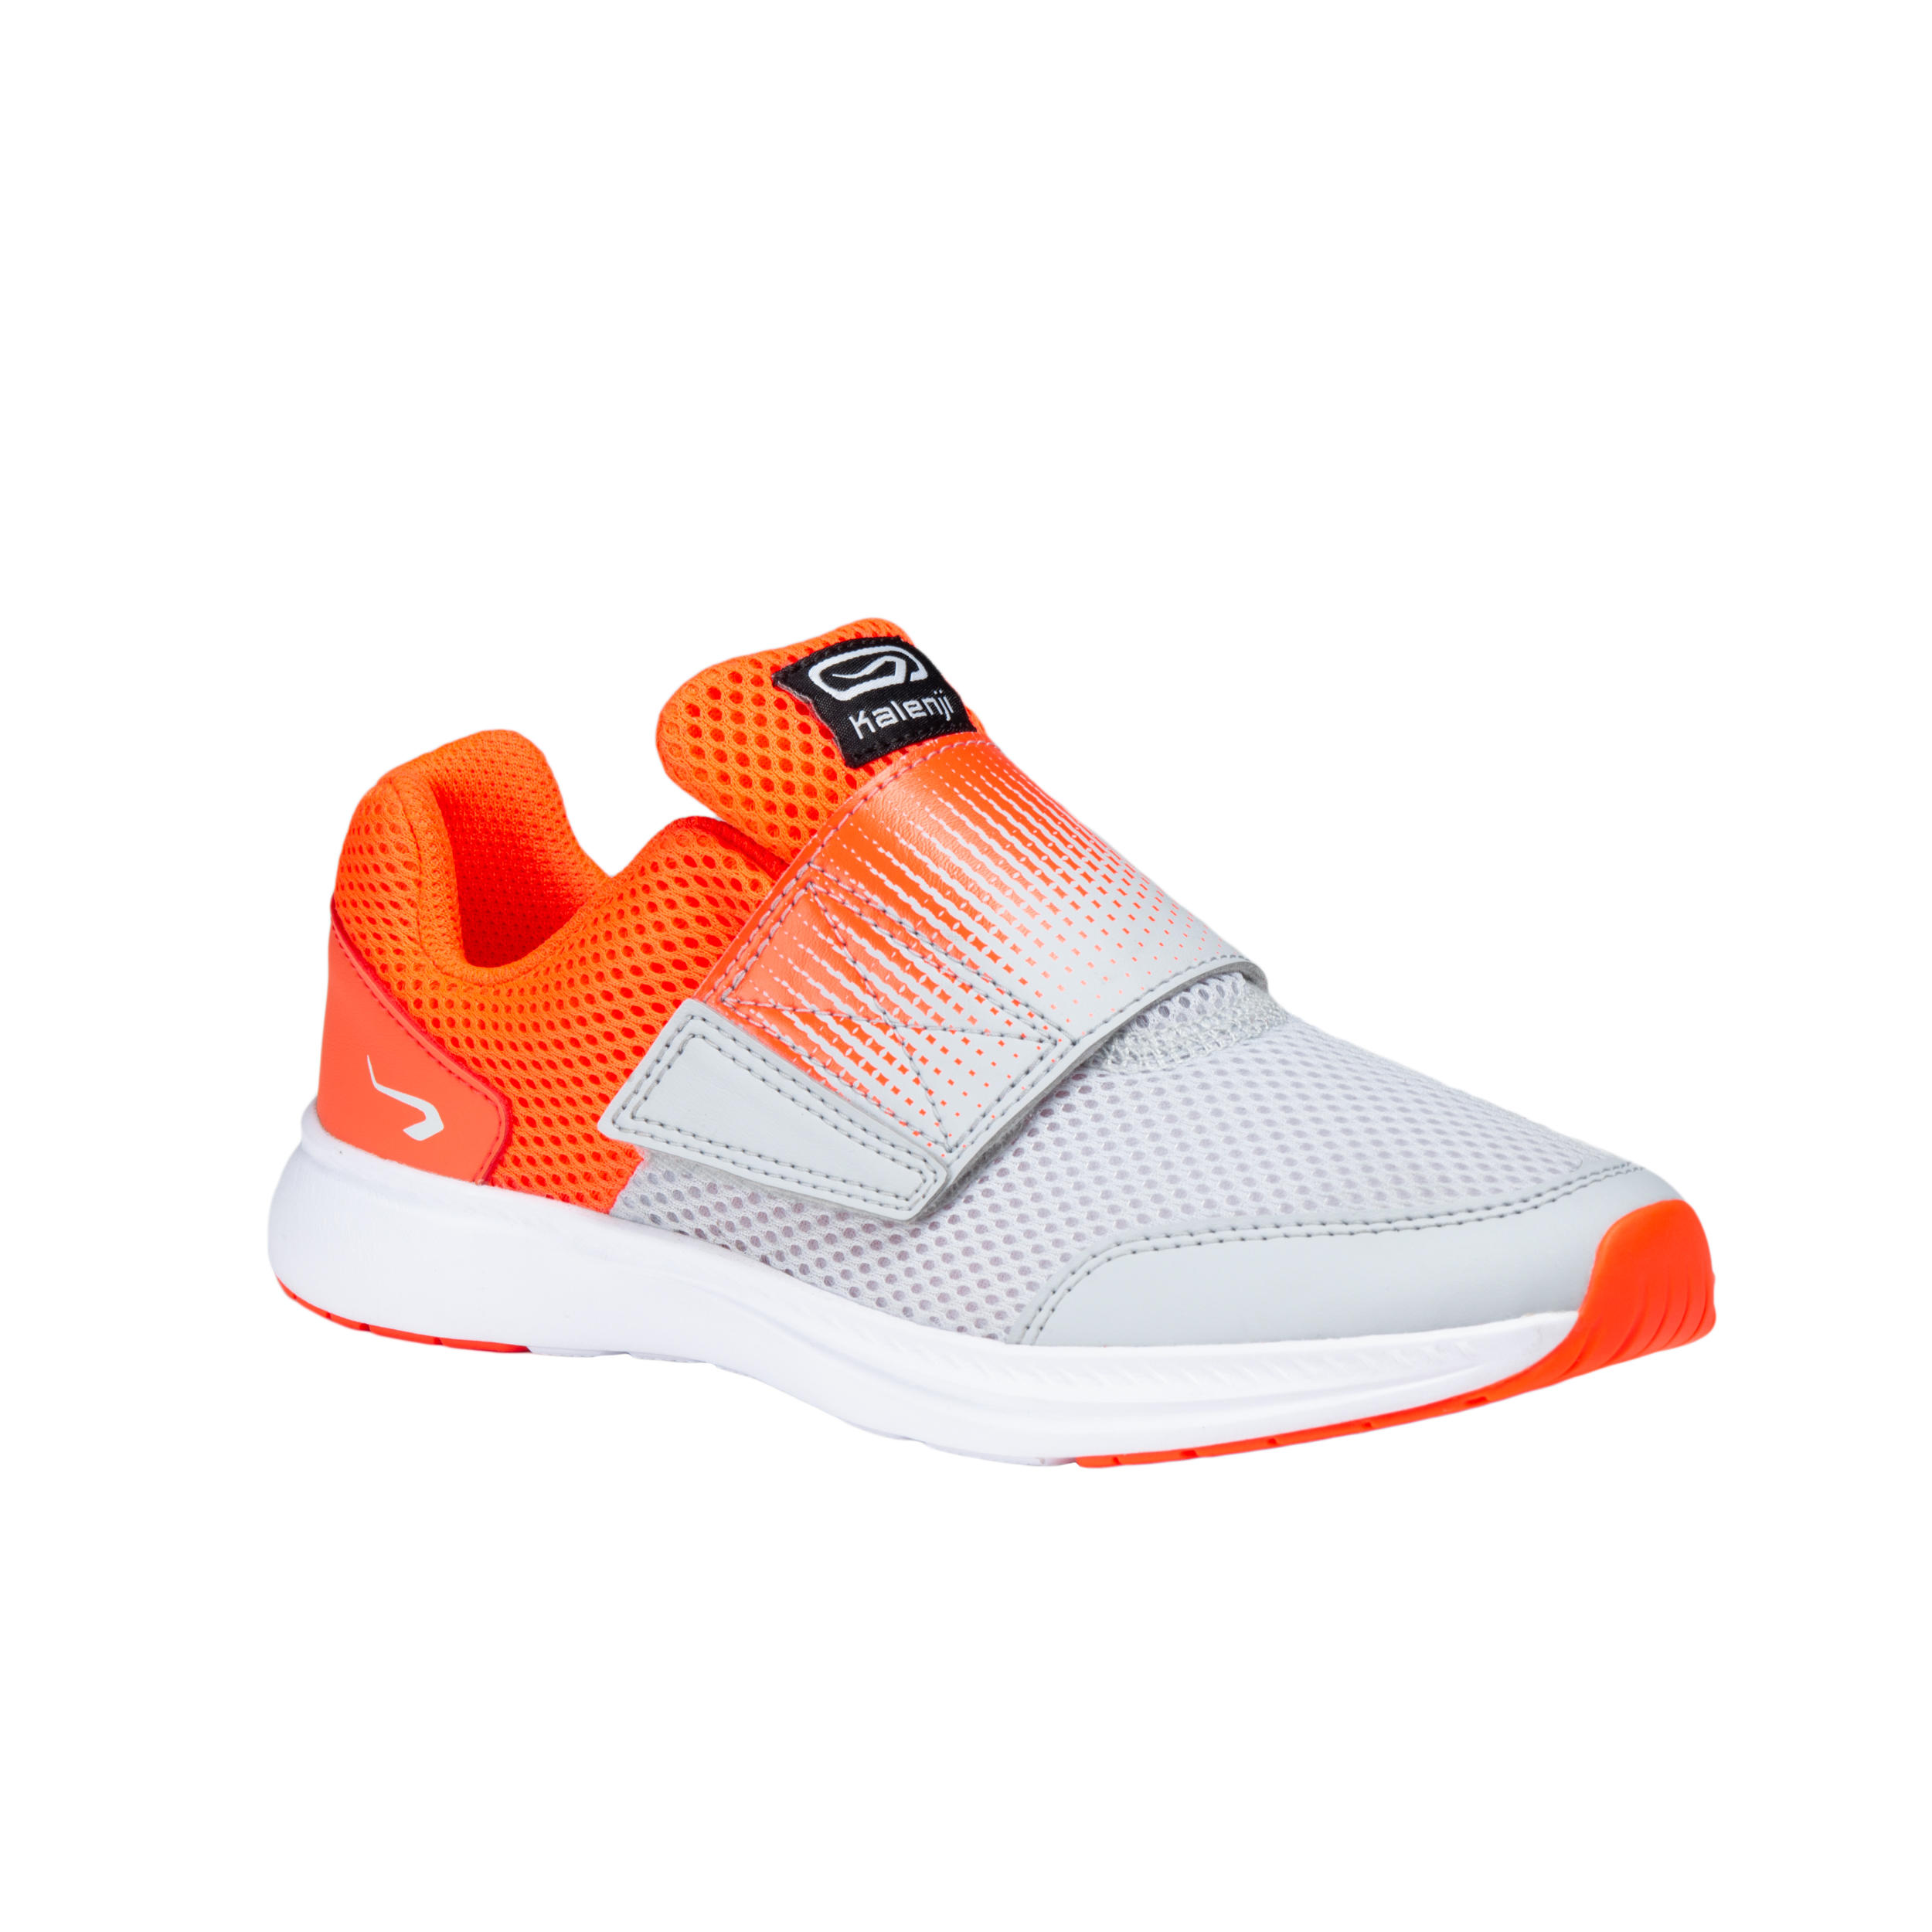 Kids Spike Shoes - Buy Shoes for Kids